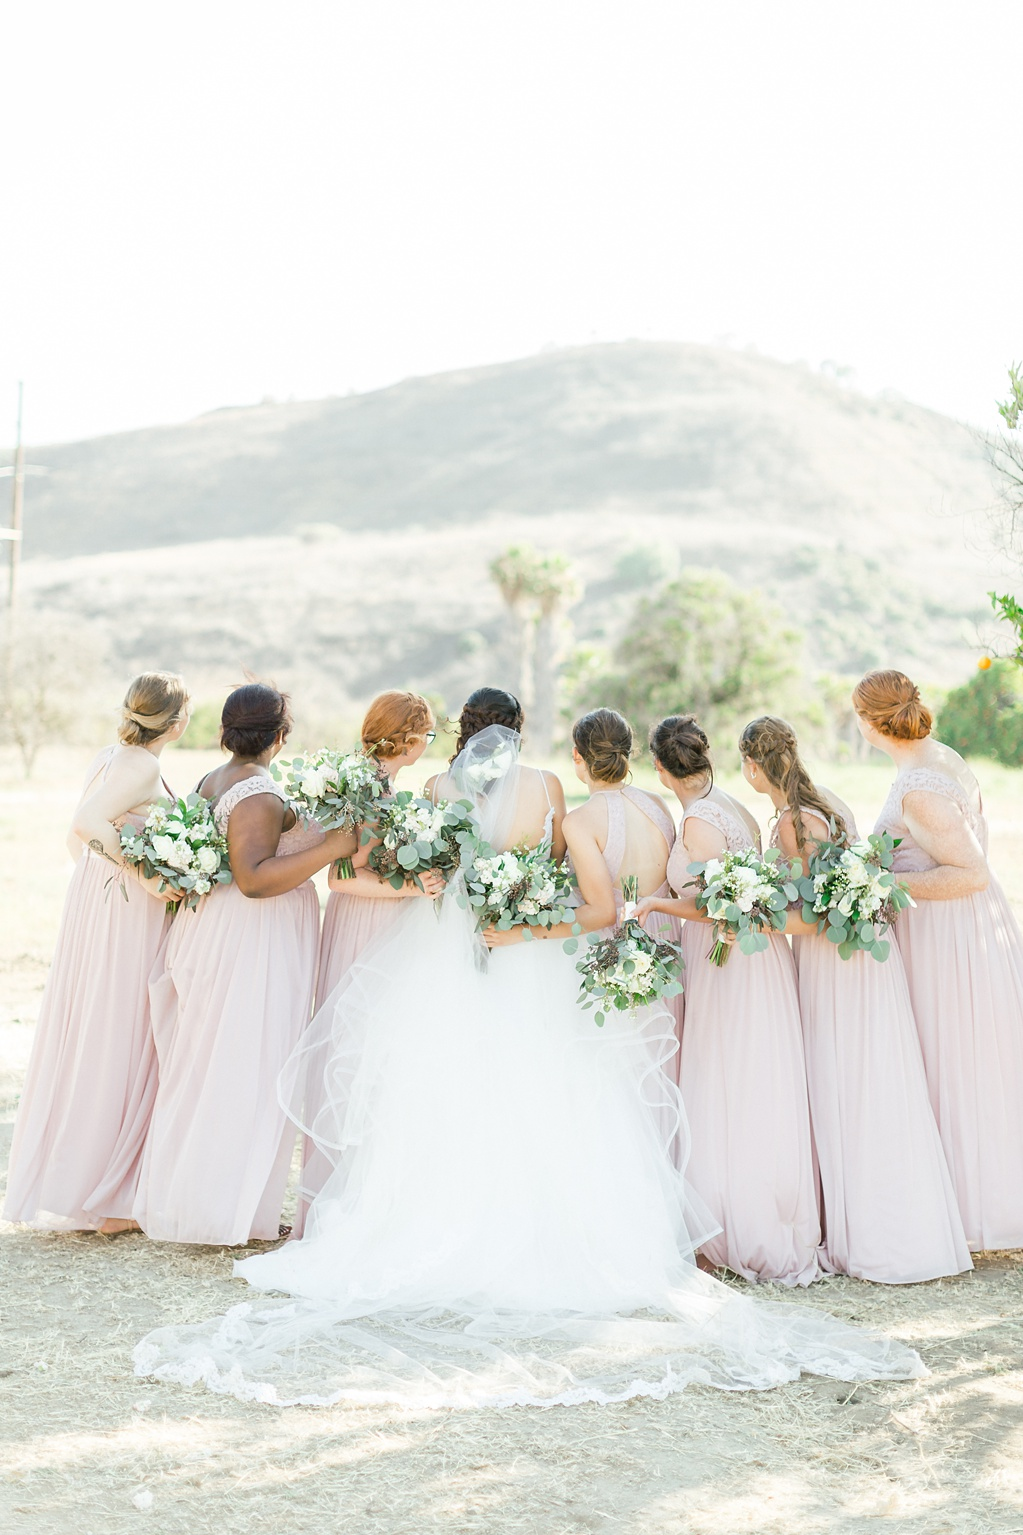 An Organic Floral Inspired Summer Wedding in the open fields of Hamilton Oaks, San Juan Capistrano by Wedding Photographer Madison Ellis (96)